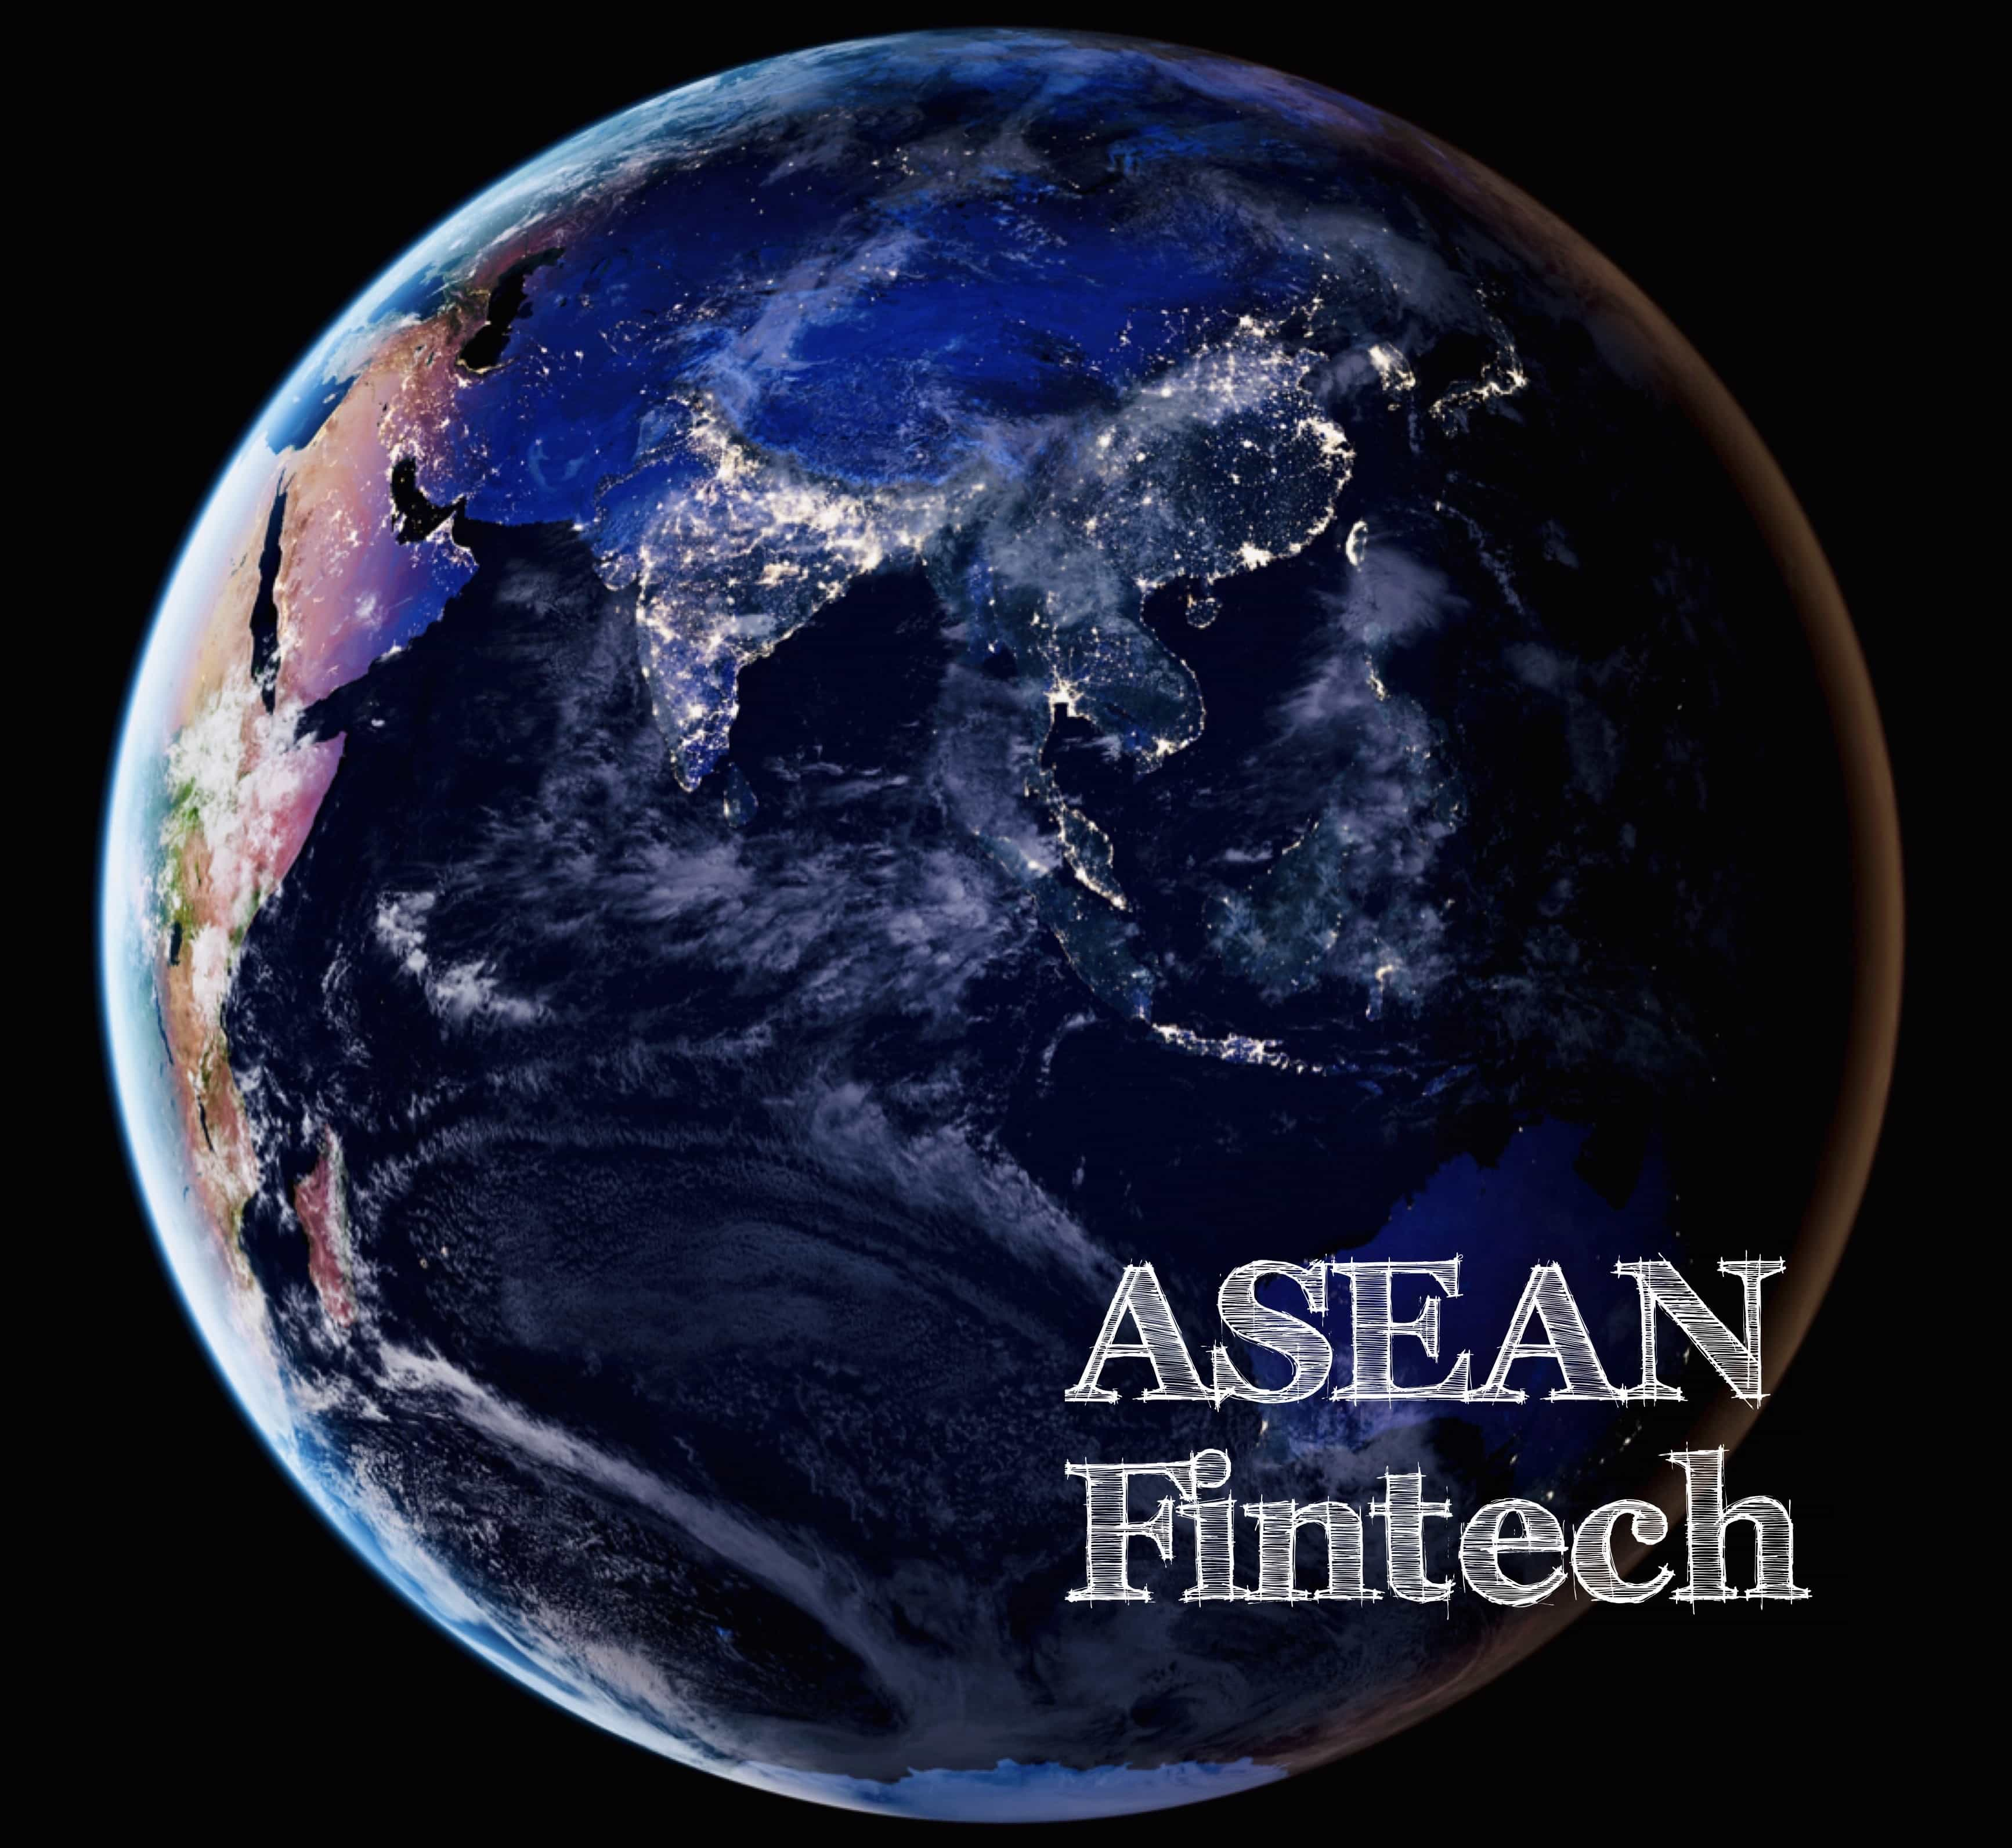 CCAF Publishes ASEAN Fintech Benchmark Study: The Emergence of Fintech Start-ups in the ASEAN Region Has Progressed at an Unprecedented Pace